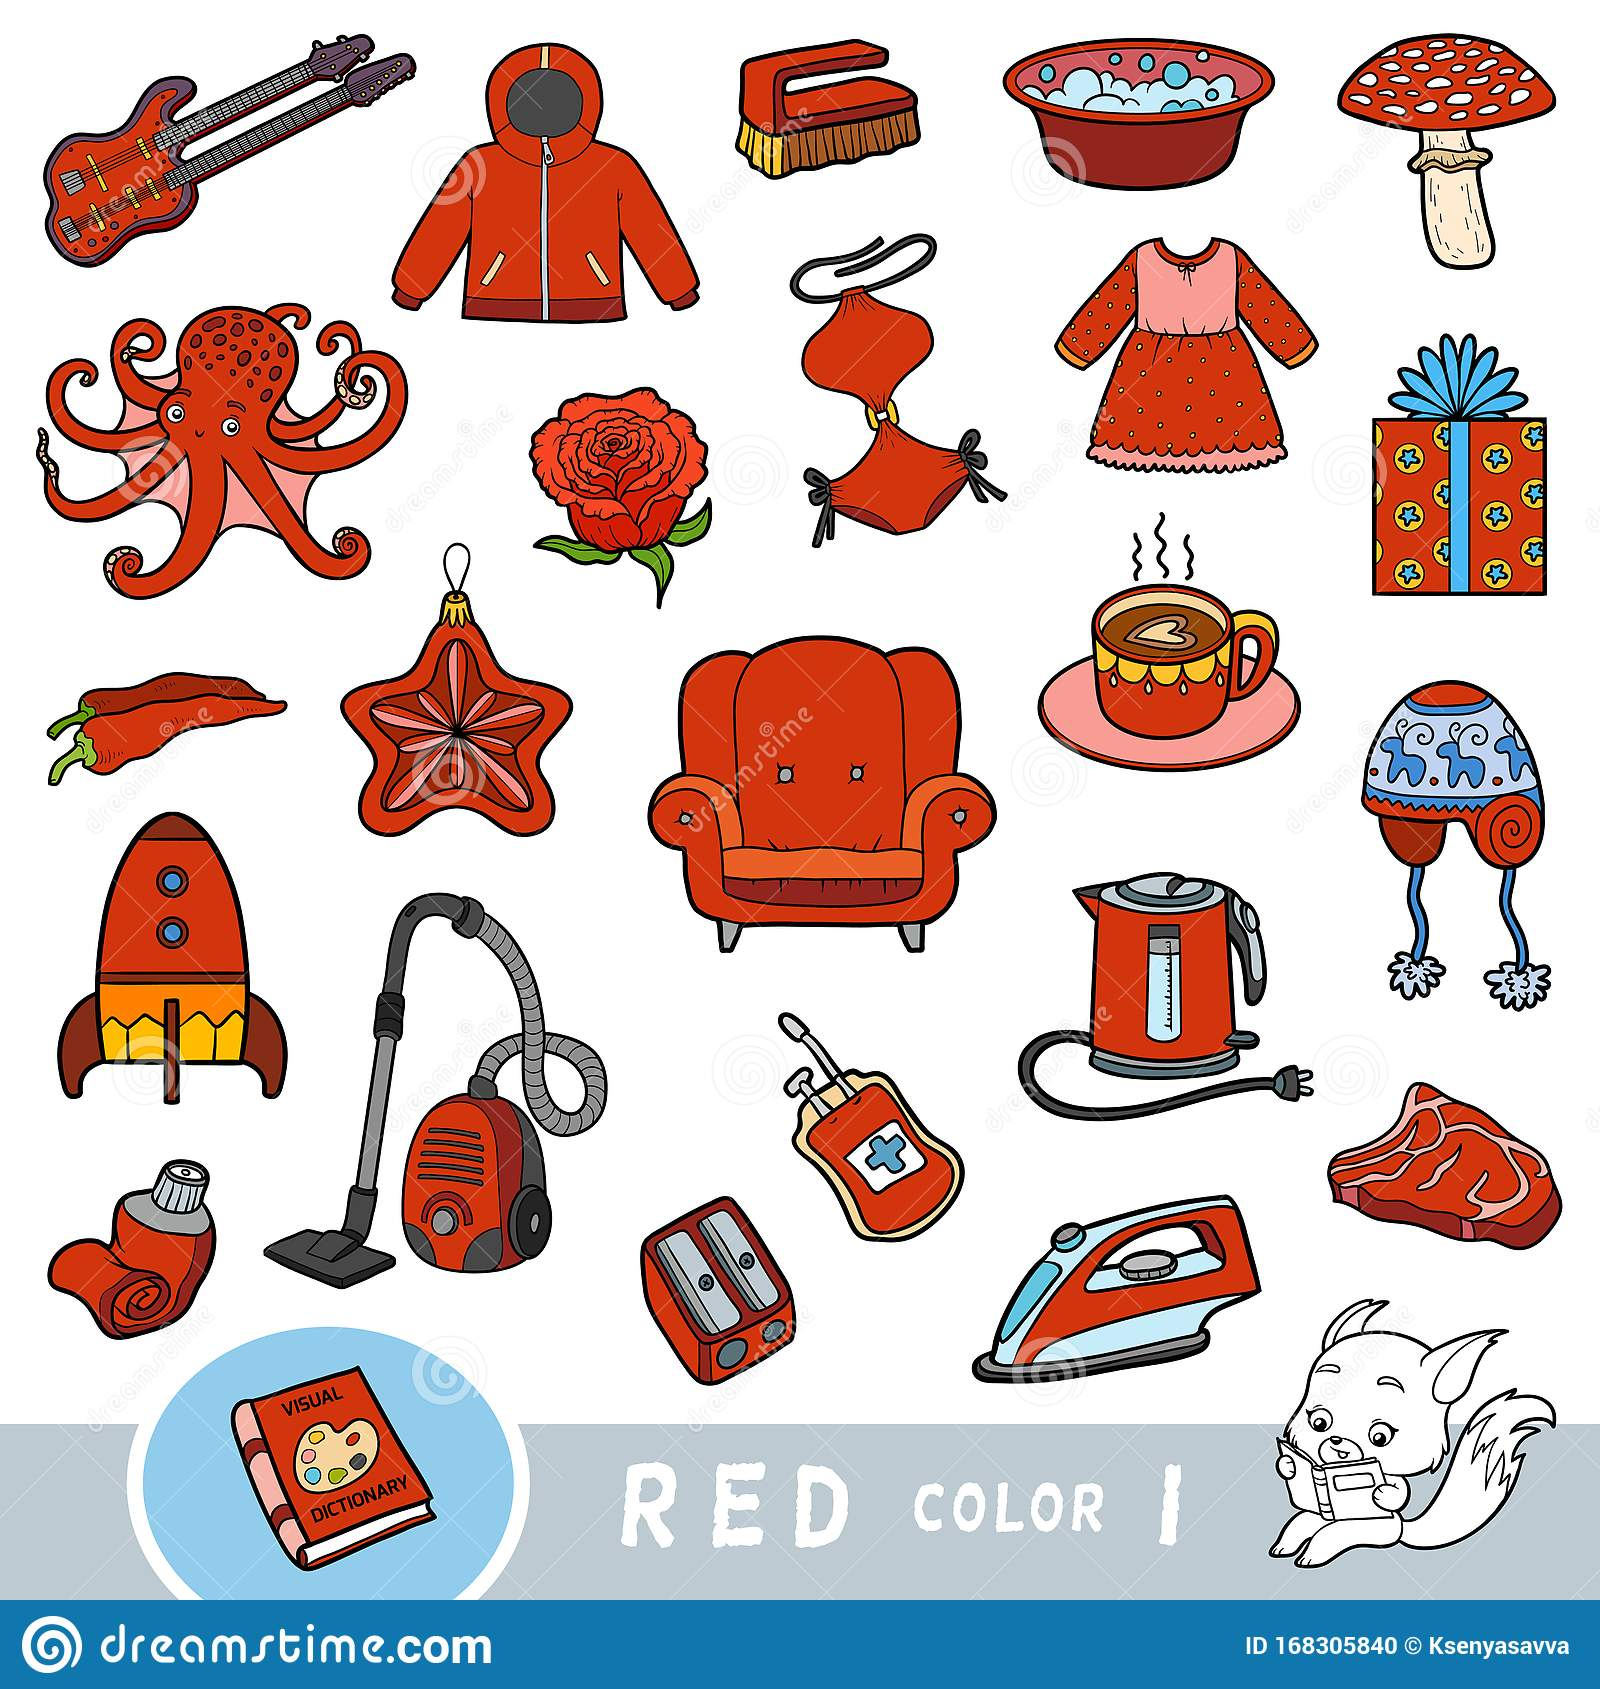 Colorful Set Of Red Color Objects Visual Dictionary For